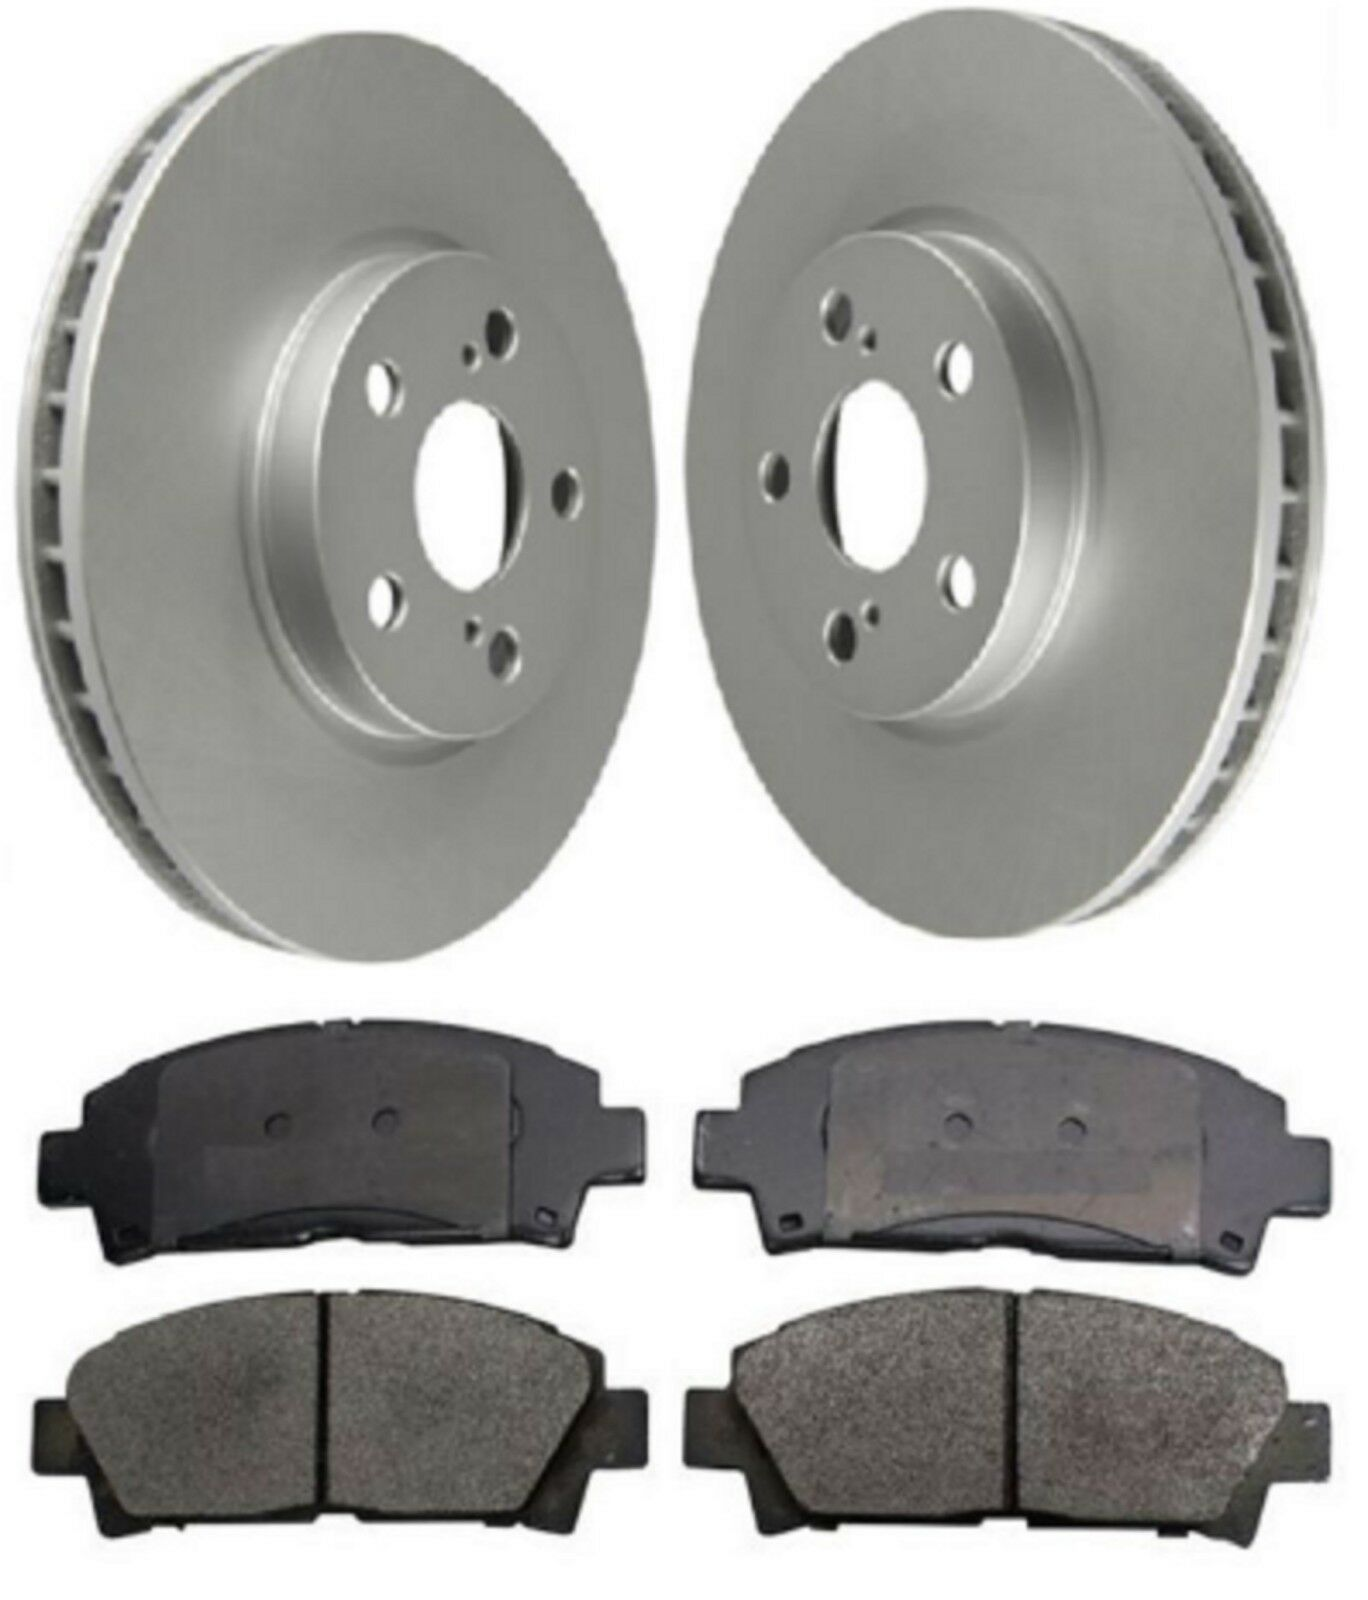 REAR DELPHI LOCKHEED BRAKE PADS FOR TOYOTA AVENSIS 1.6 1.8 2.0 D-4D 2.2 2008-